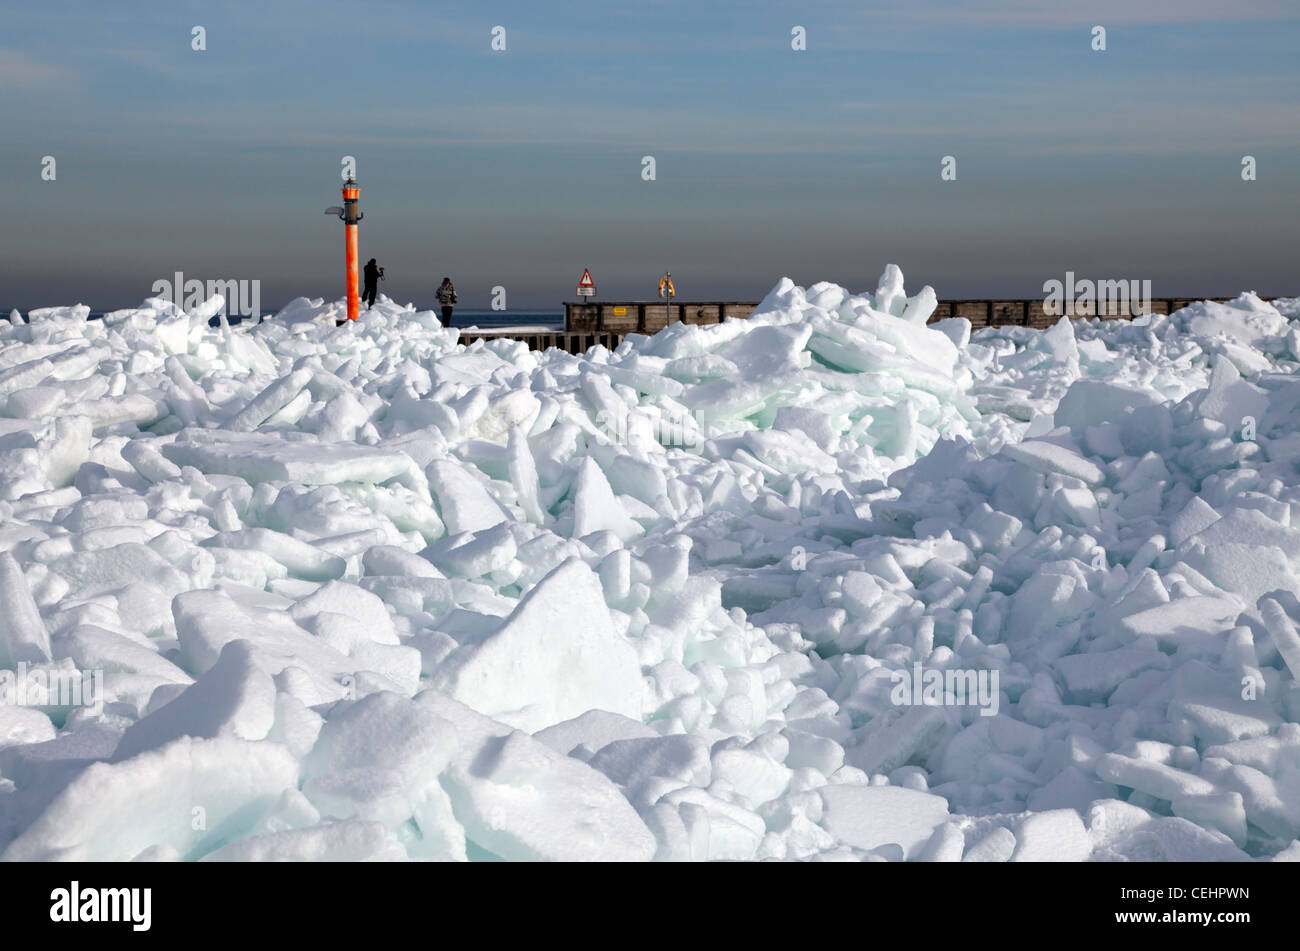 An extremely cold spell with hard frost and onshore wind has packed the ice in the Øresund (Oresund) sound - Stock Image